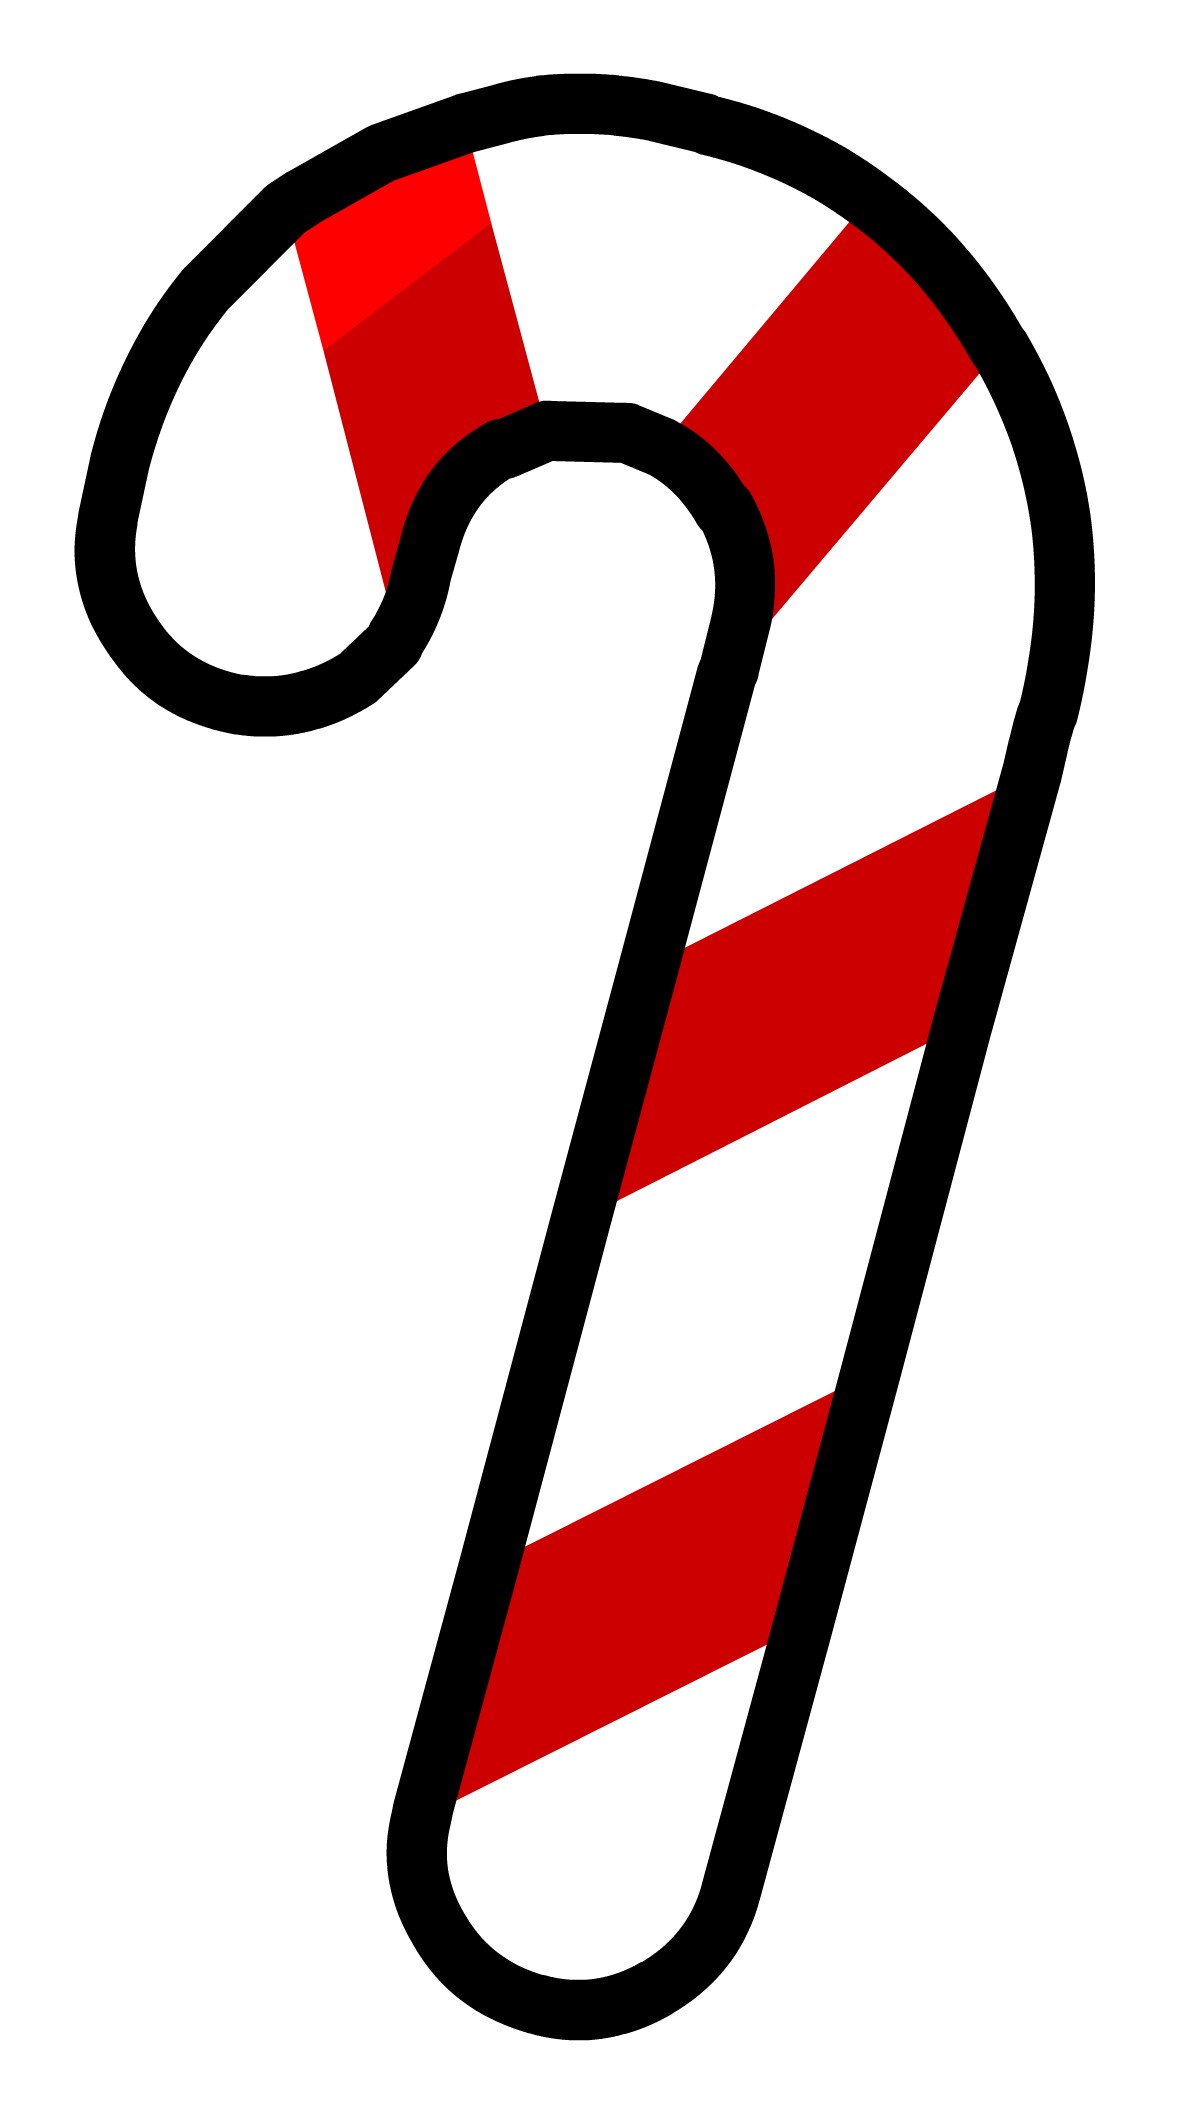 Image Candy Cane PinPNG Club Penguin Wiki FANDOM powered by Wikia